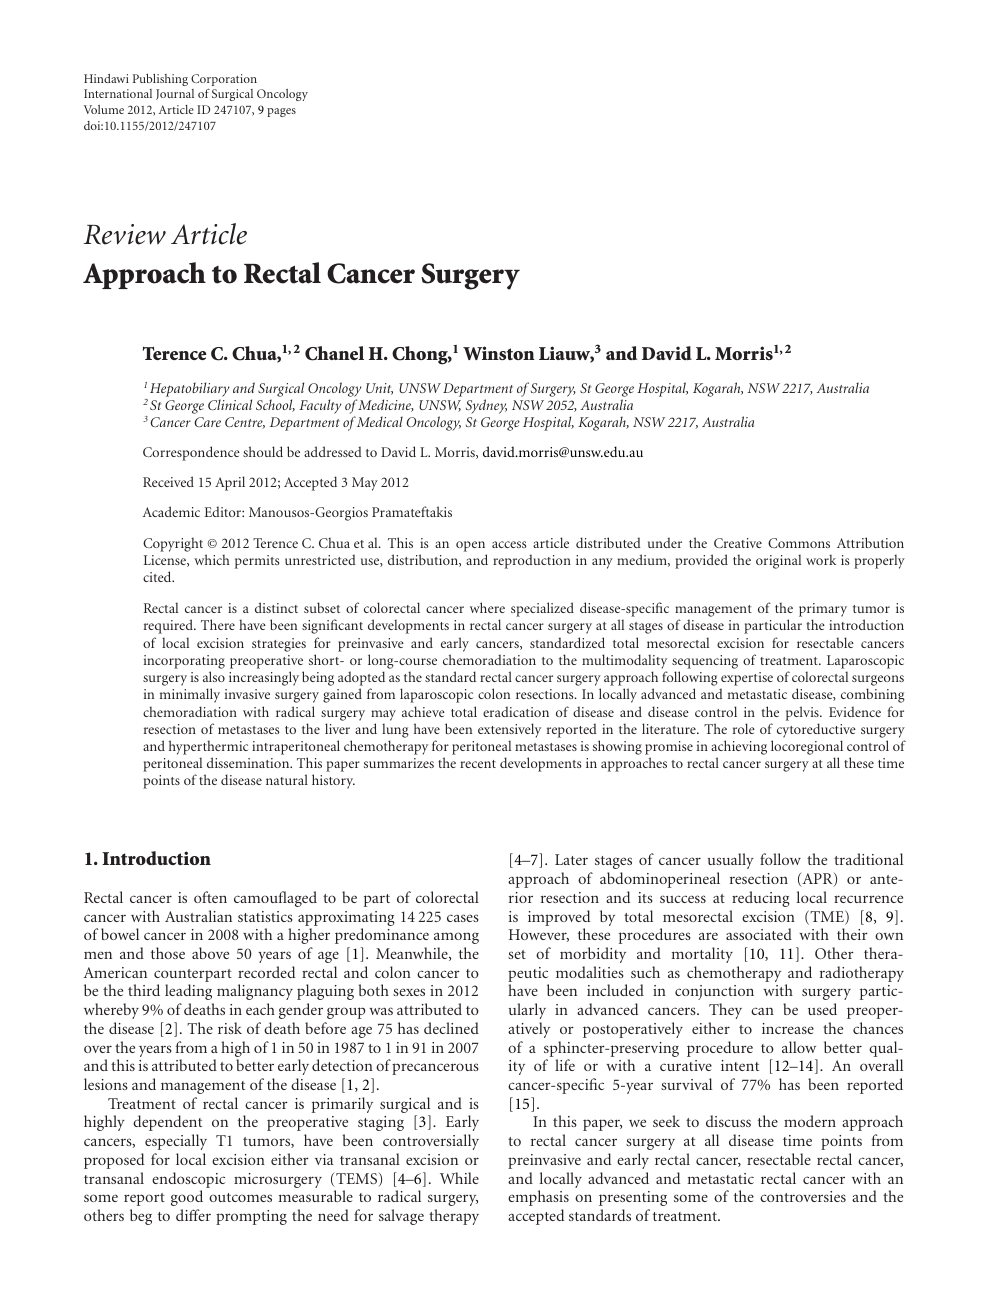 colorectal cancer journal articles